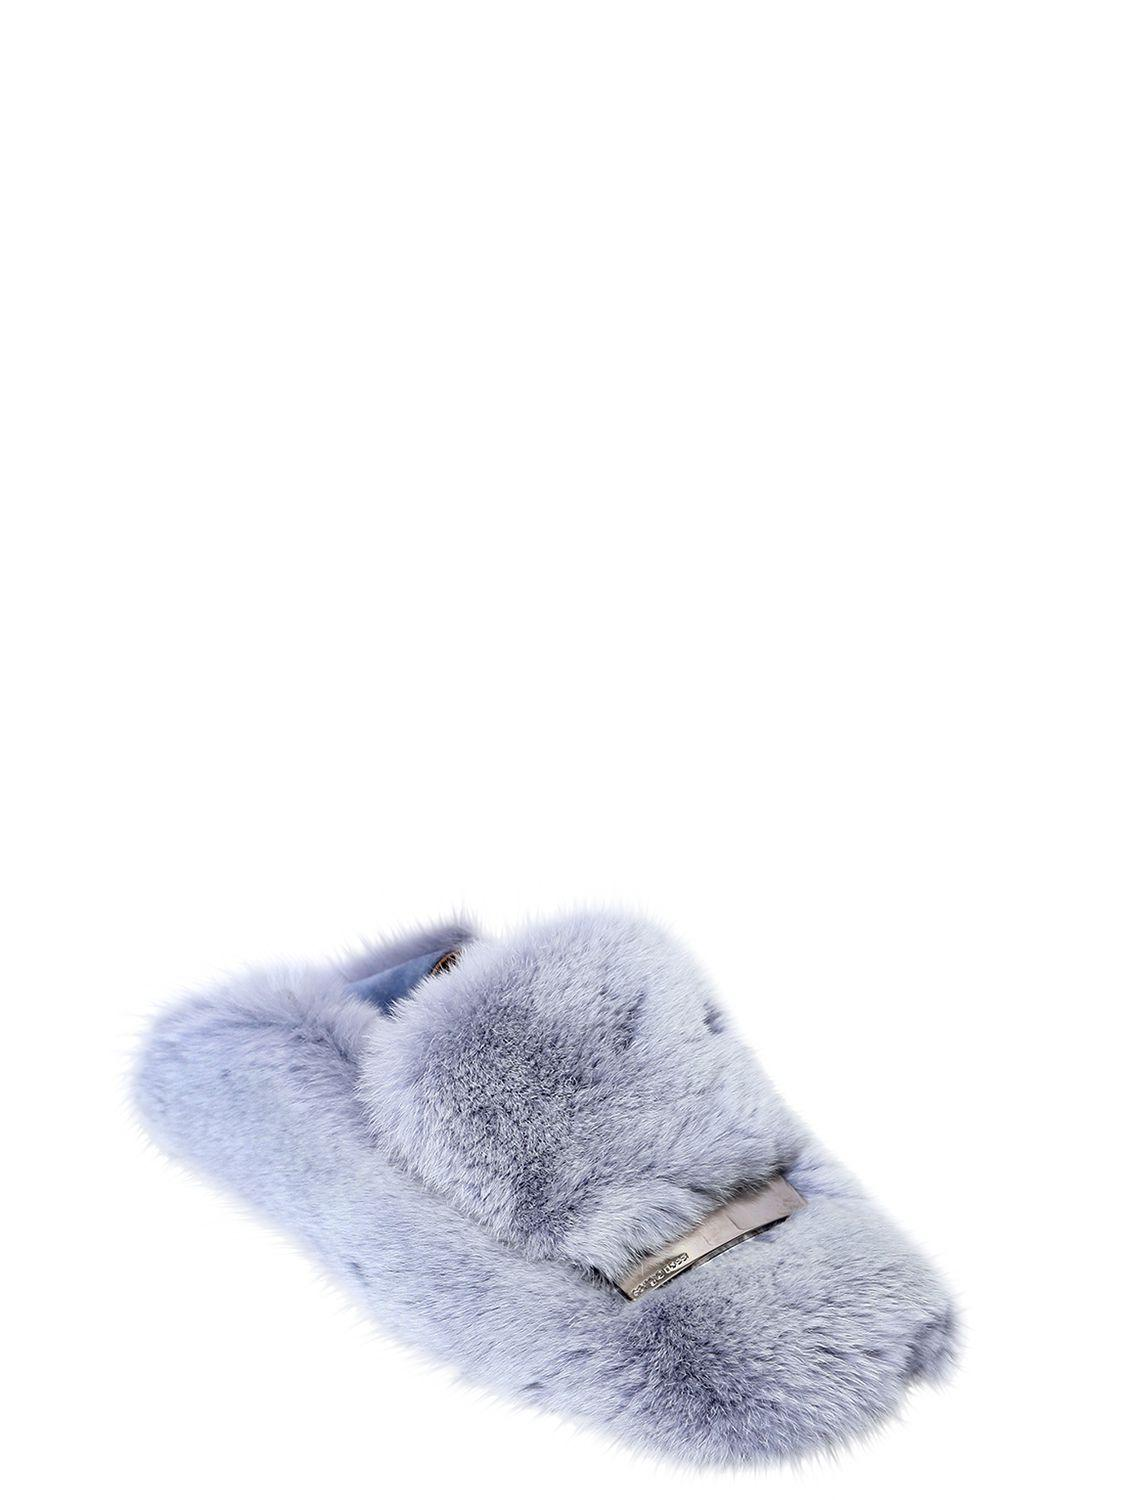 Slip On Shoes A77990 rabbit fur Metal buckle light blue Sergio Rossi gkJHW